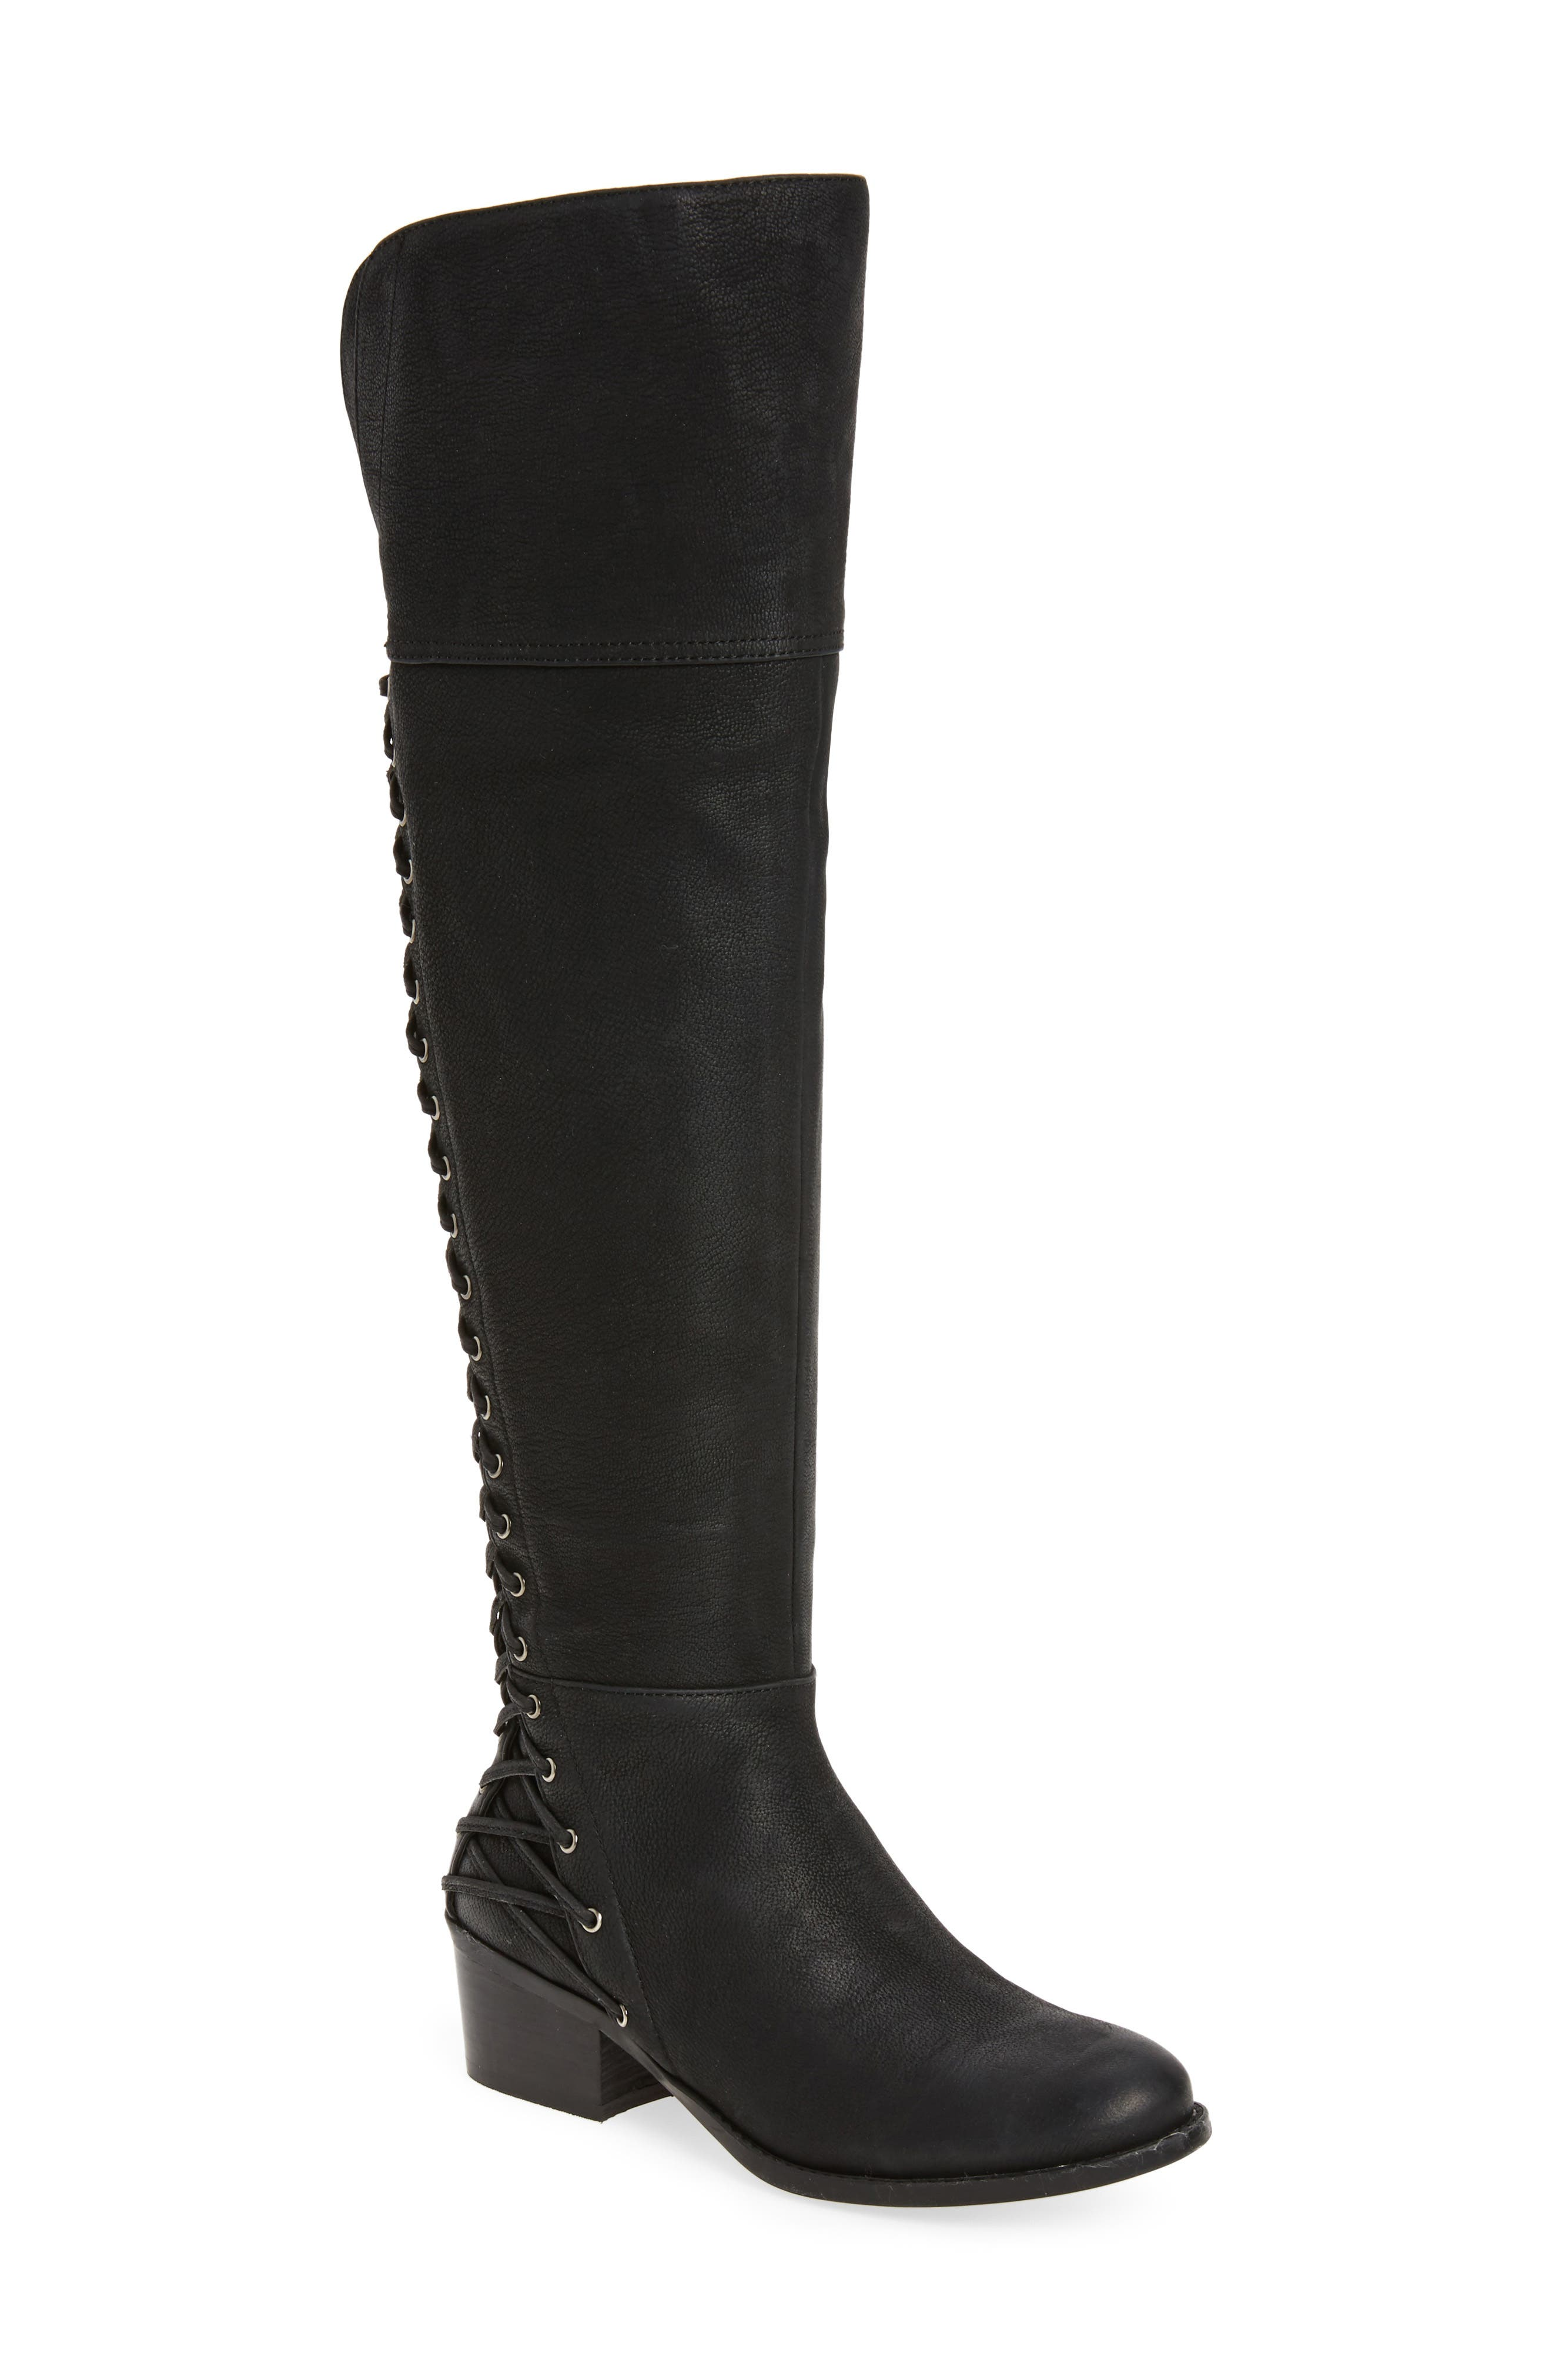 Bolina Over the Knee Boot,                         Main,                         color, Black